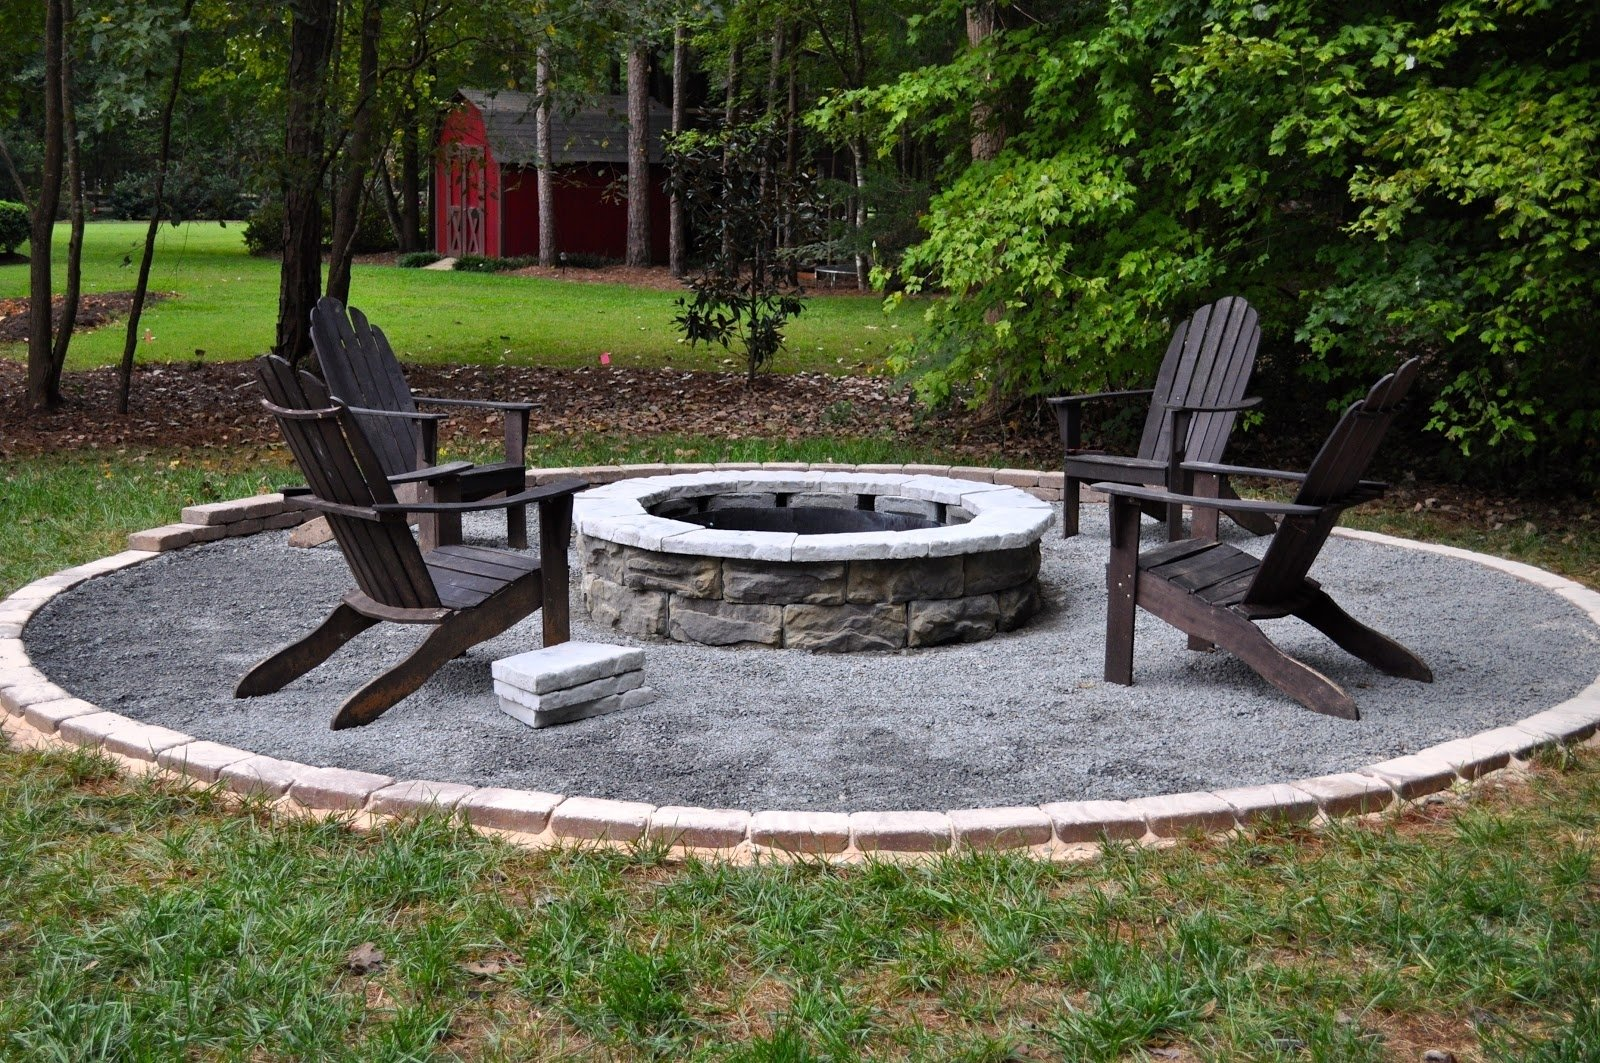 10 Best Fire Pit Ideas Outdoor Living image of best diy fire pit ideas rustic med art home design posters 2020